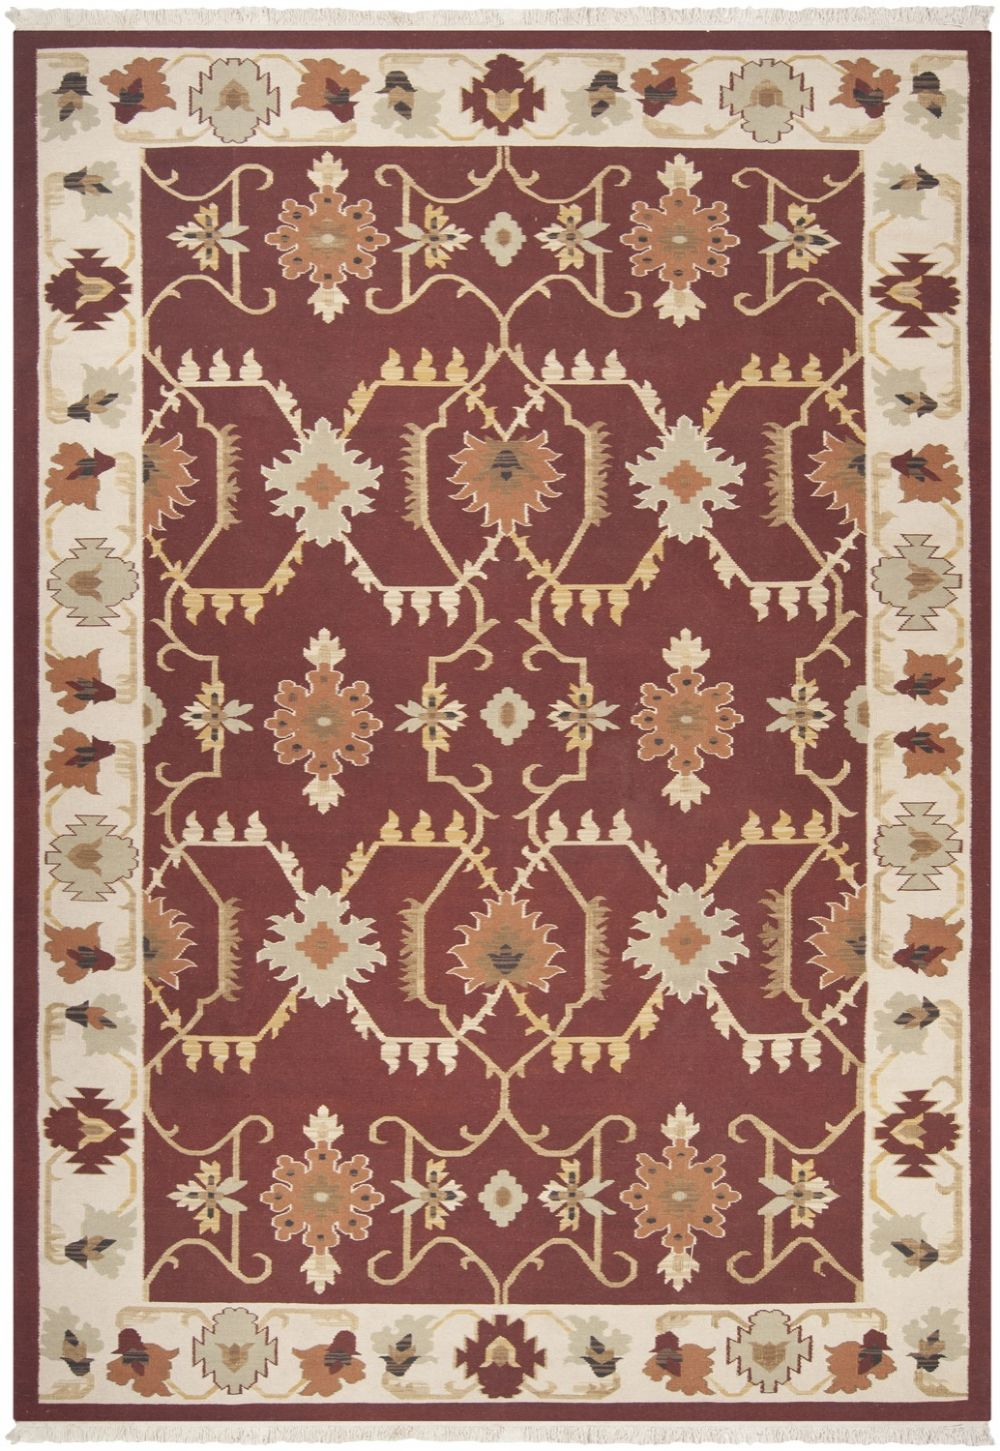 surya nomadic kilim southwestern/lodge area rug collection